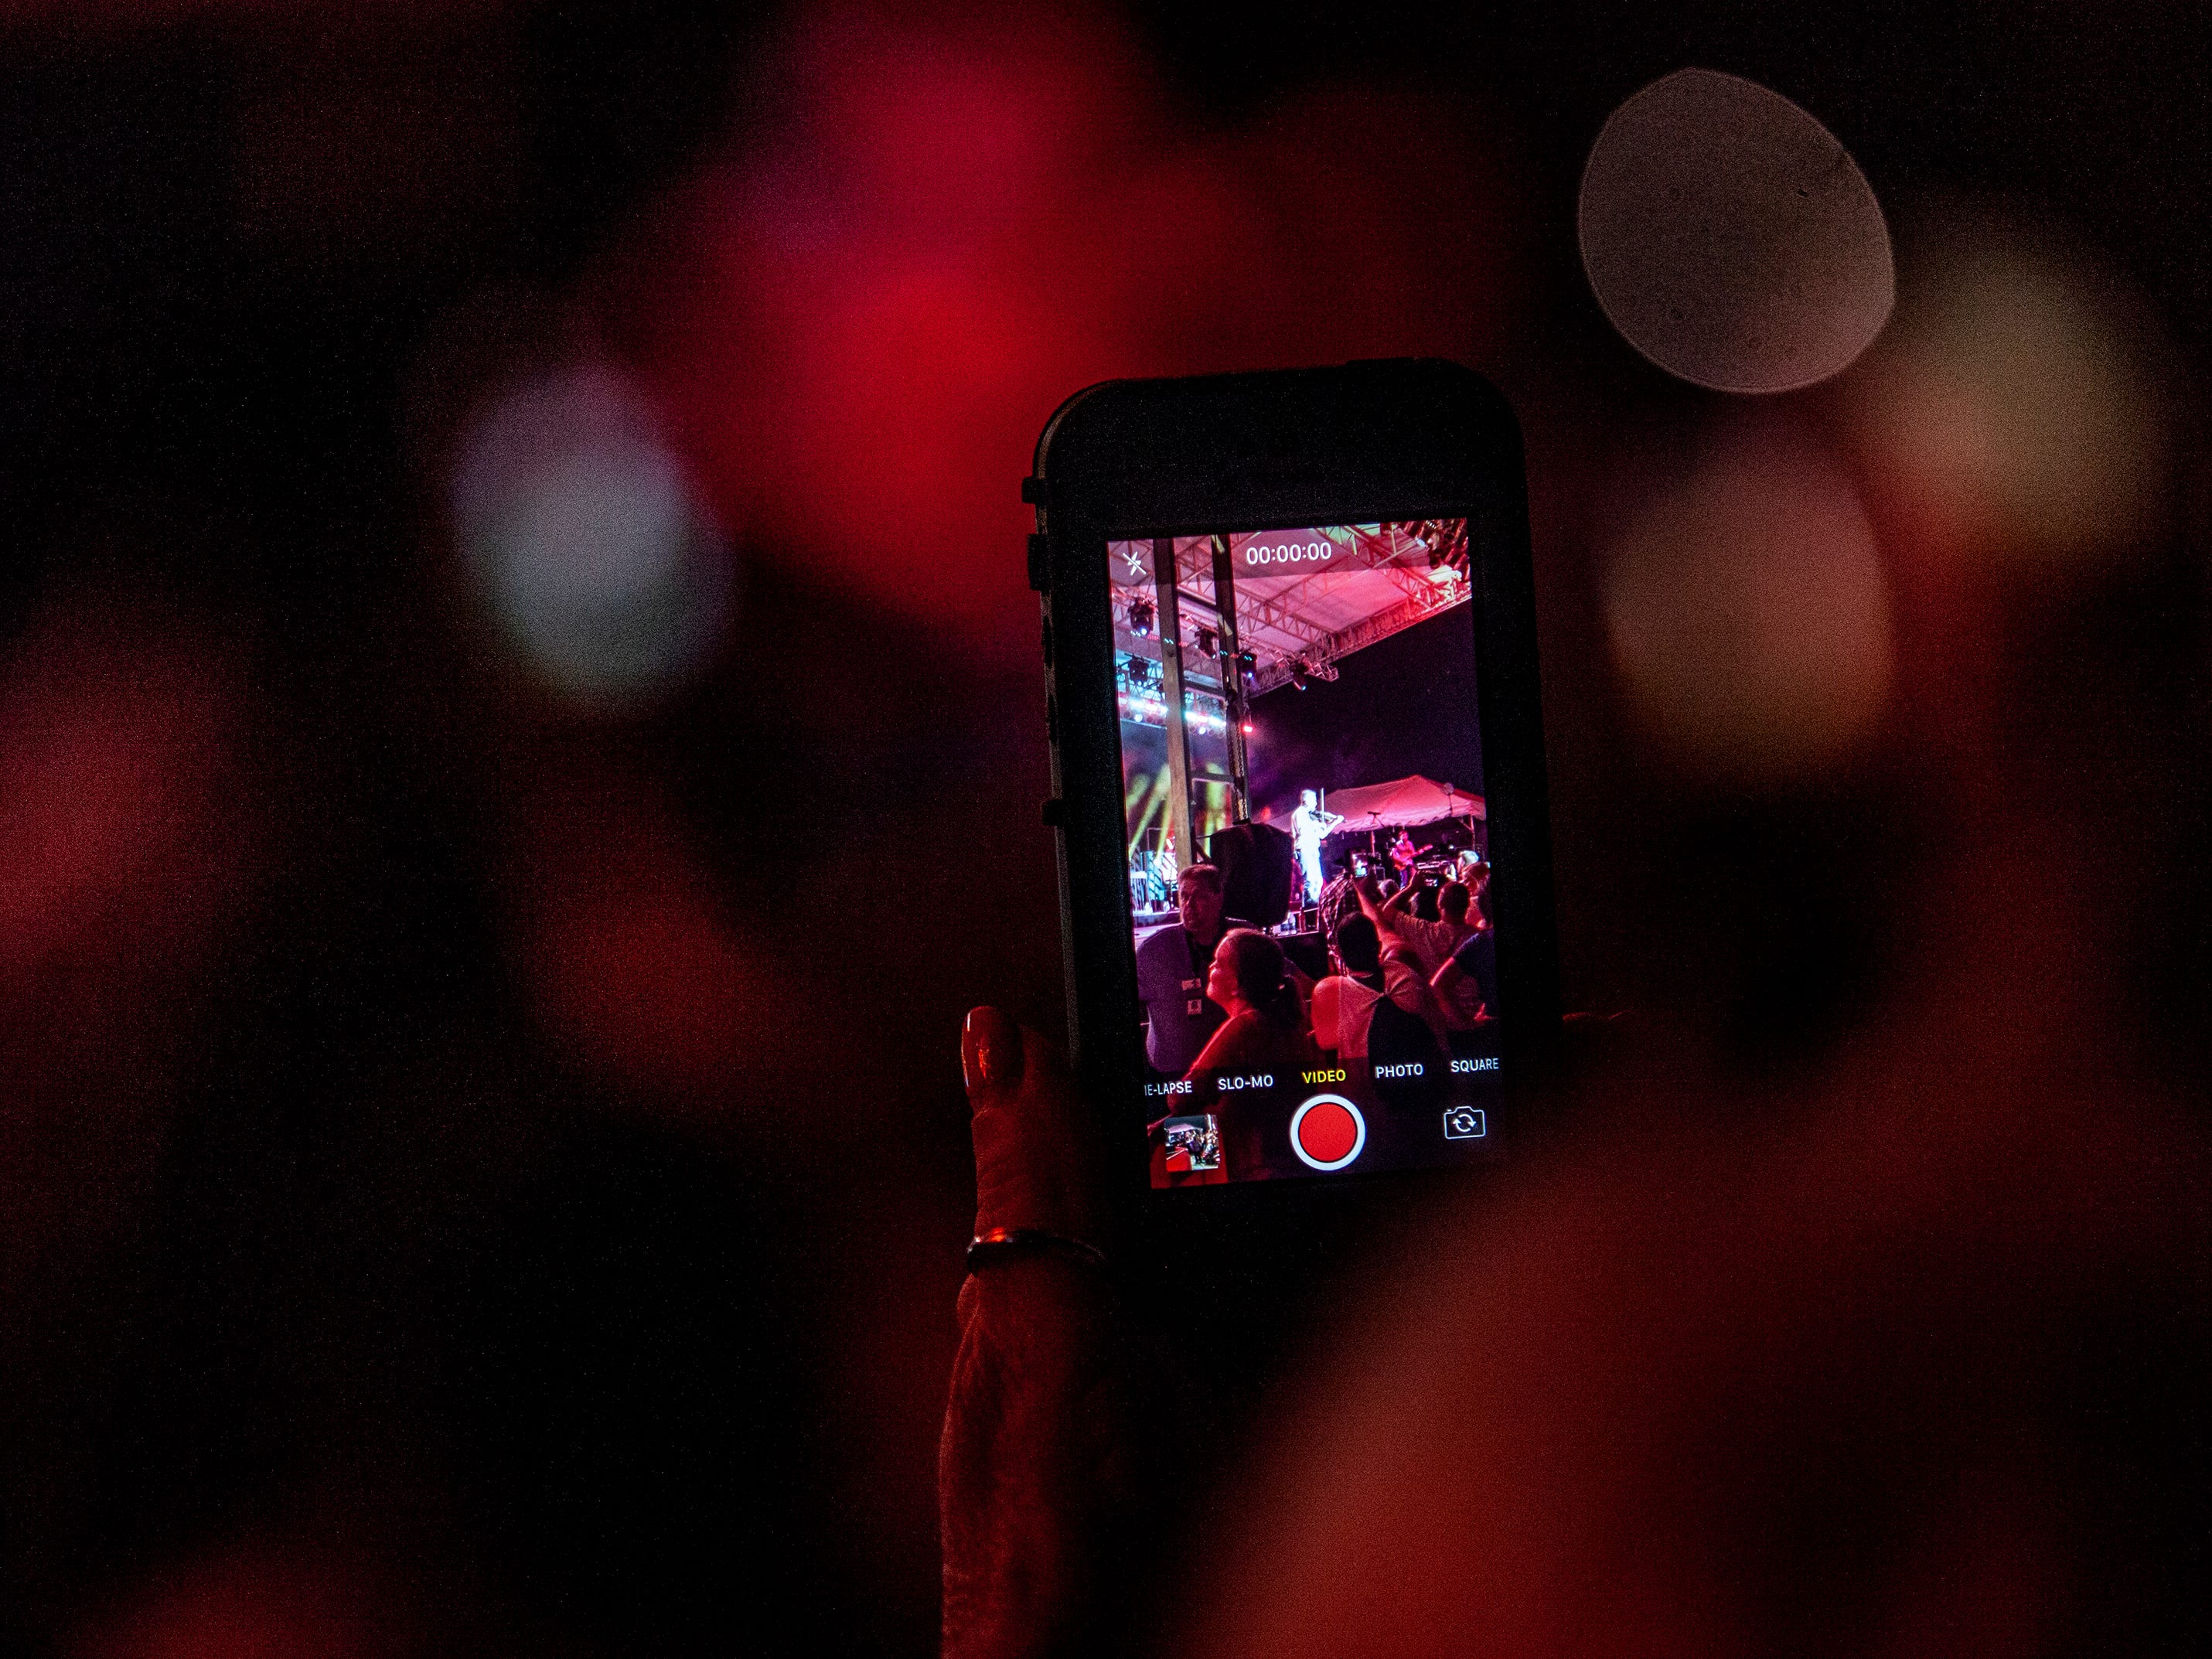 Fans of Josh Turner brought out their phones to record the moment at the Kentucky State Fair. August 24, 2018